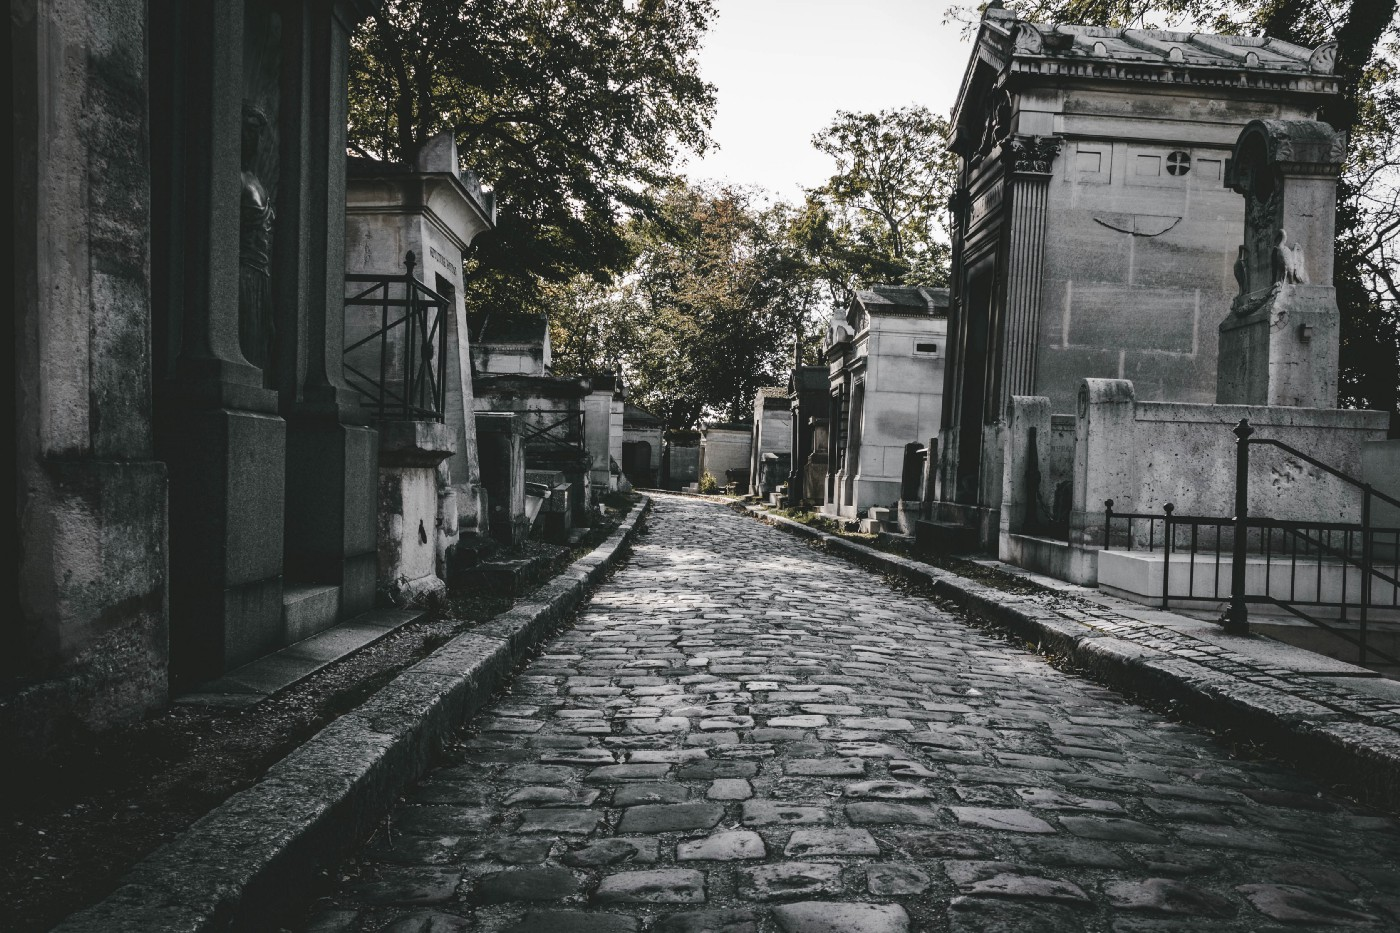 A darkish image of a cobblestone path to a graveyard.